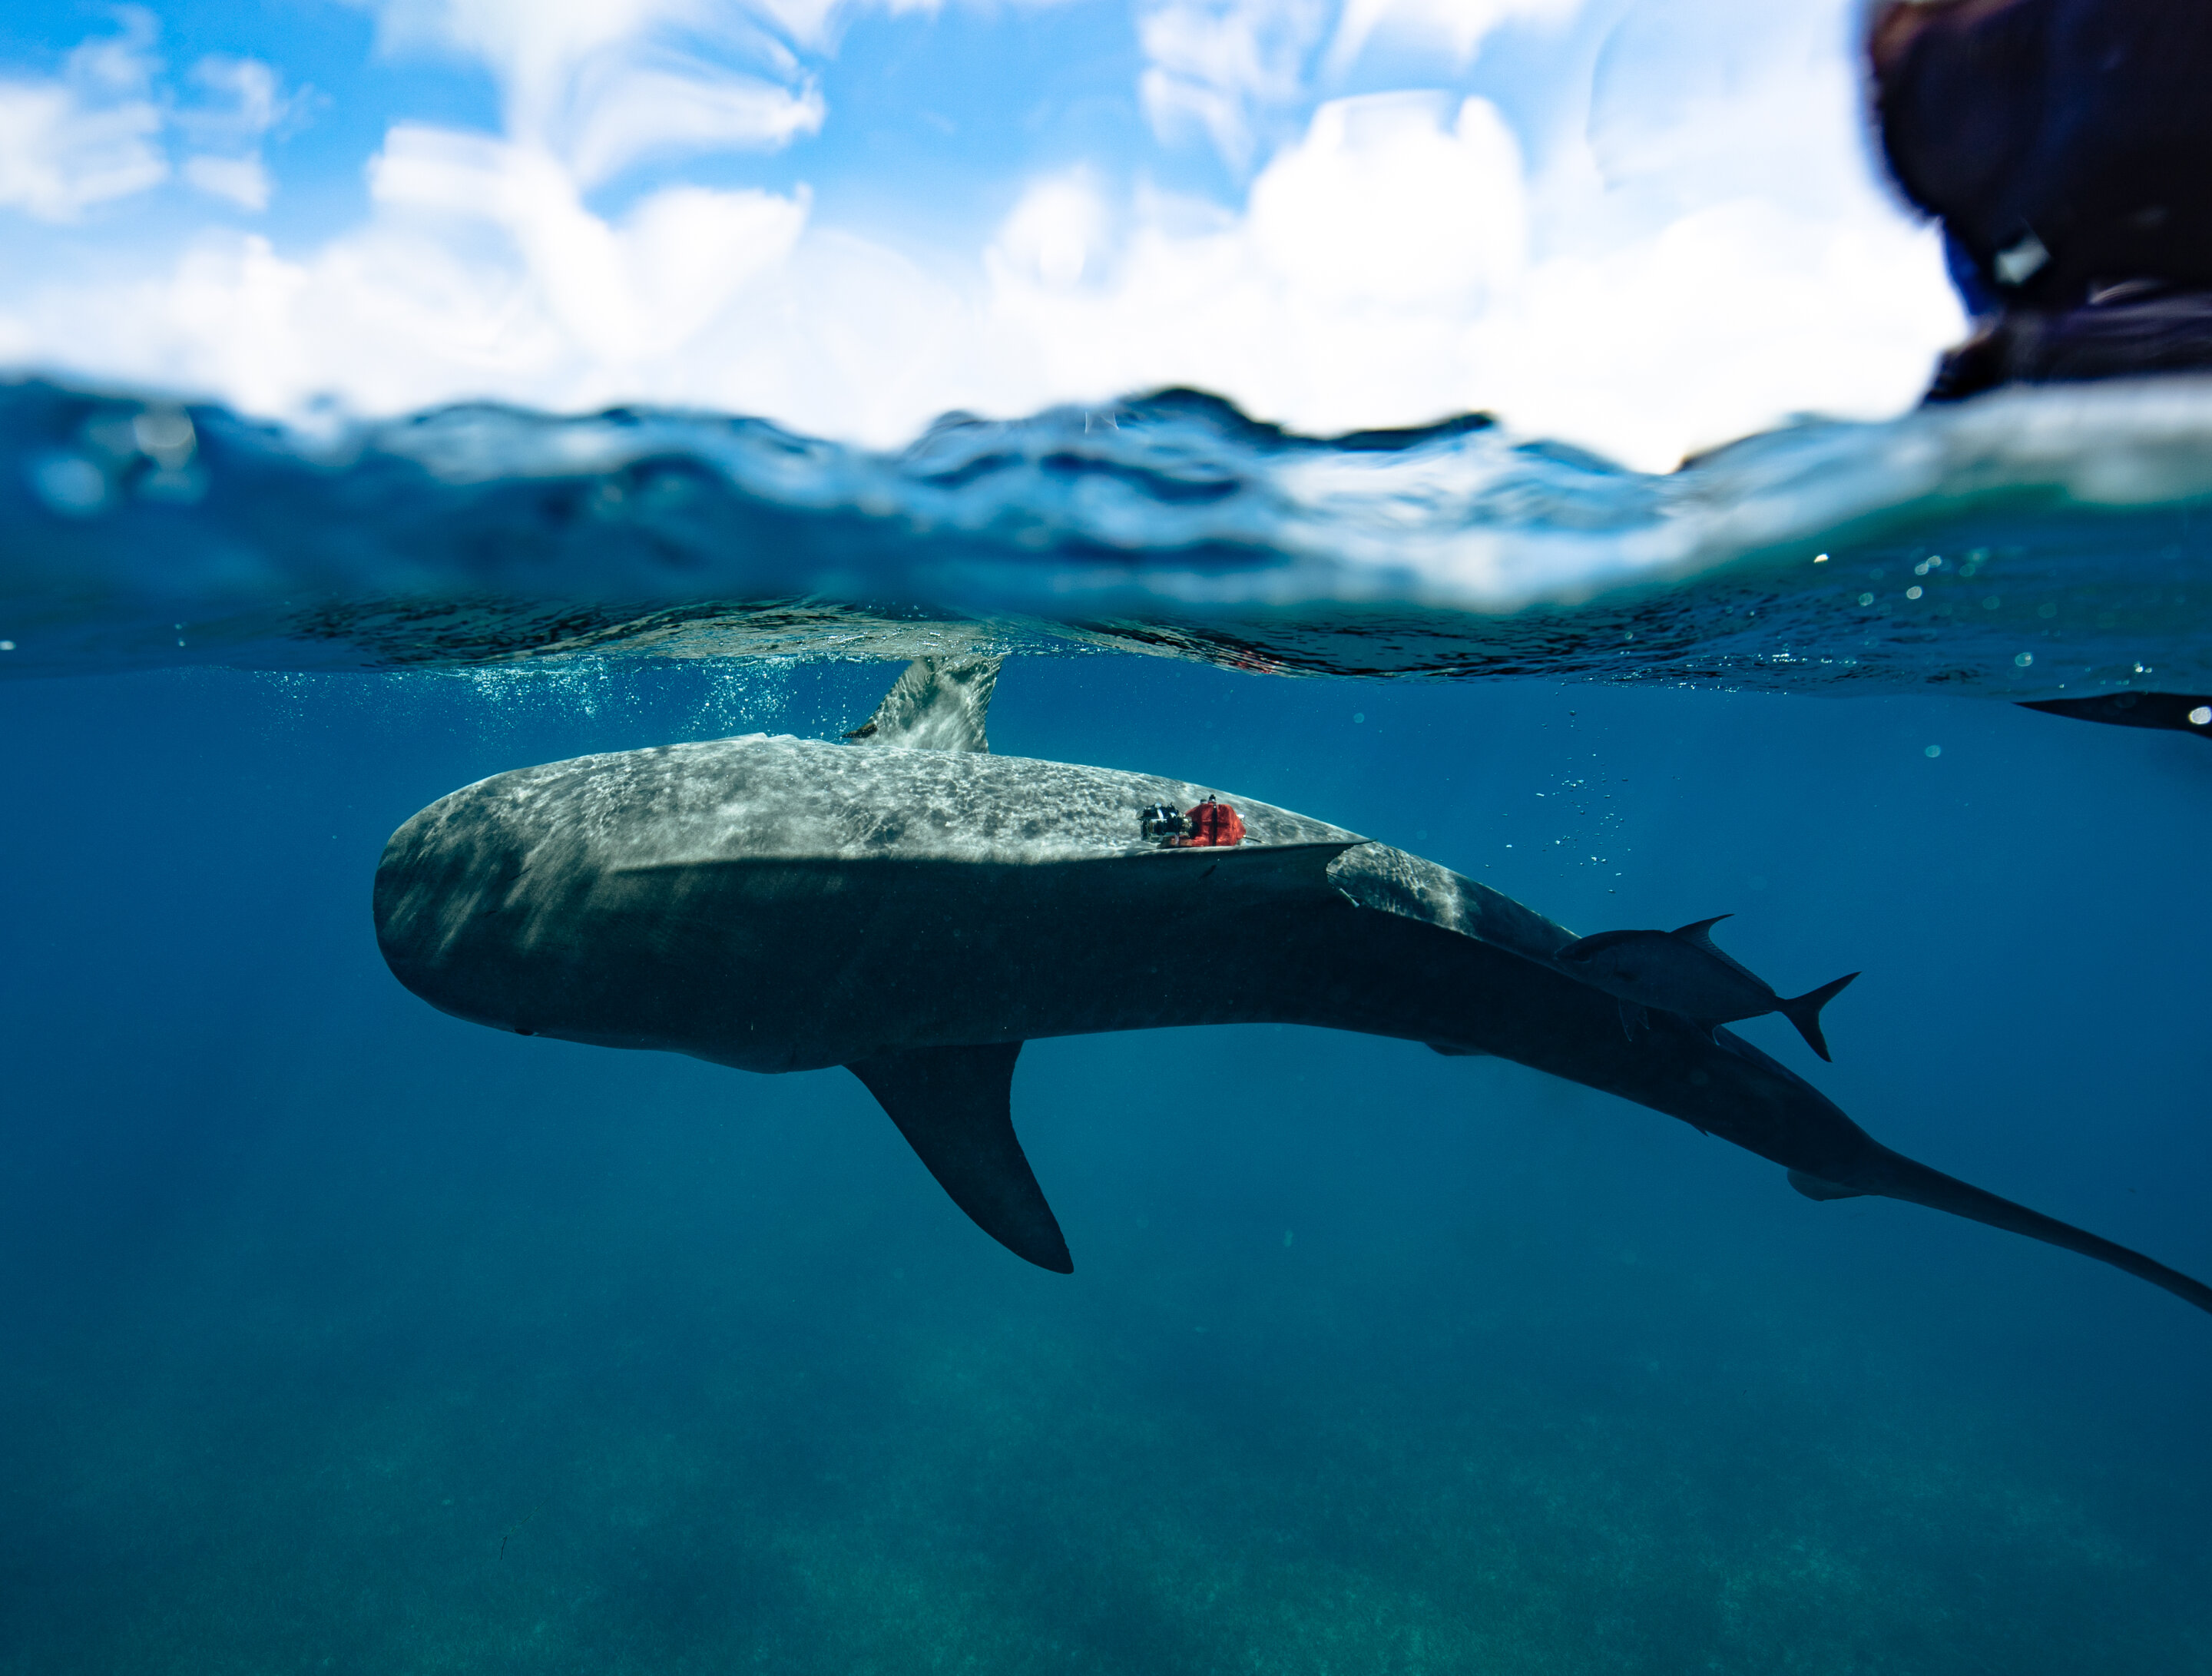 Why are some fish warm-blooded? Predatory sharks gain speed advantage